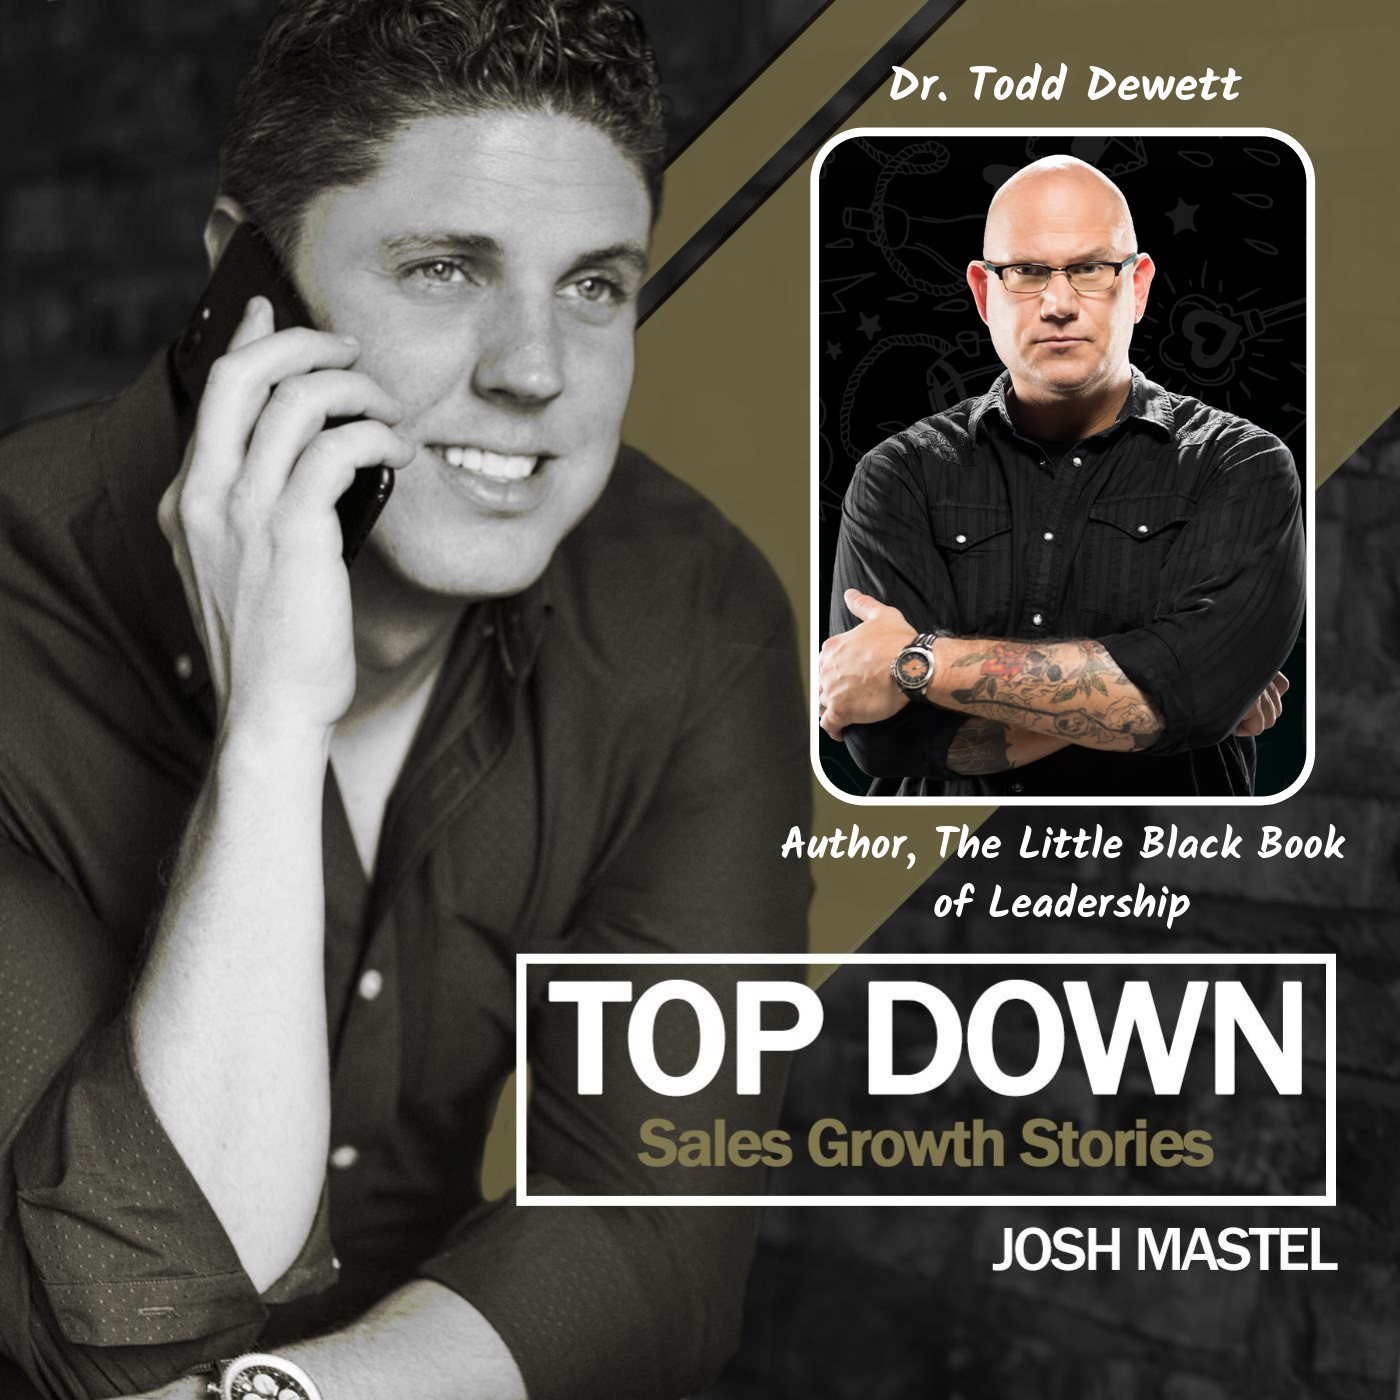 Leaders -- Get Over Your Damn Self With Author and Leadership Expert Dr. Todd Dewett show art